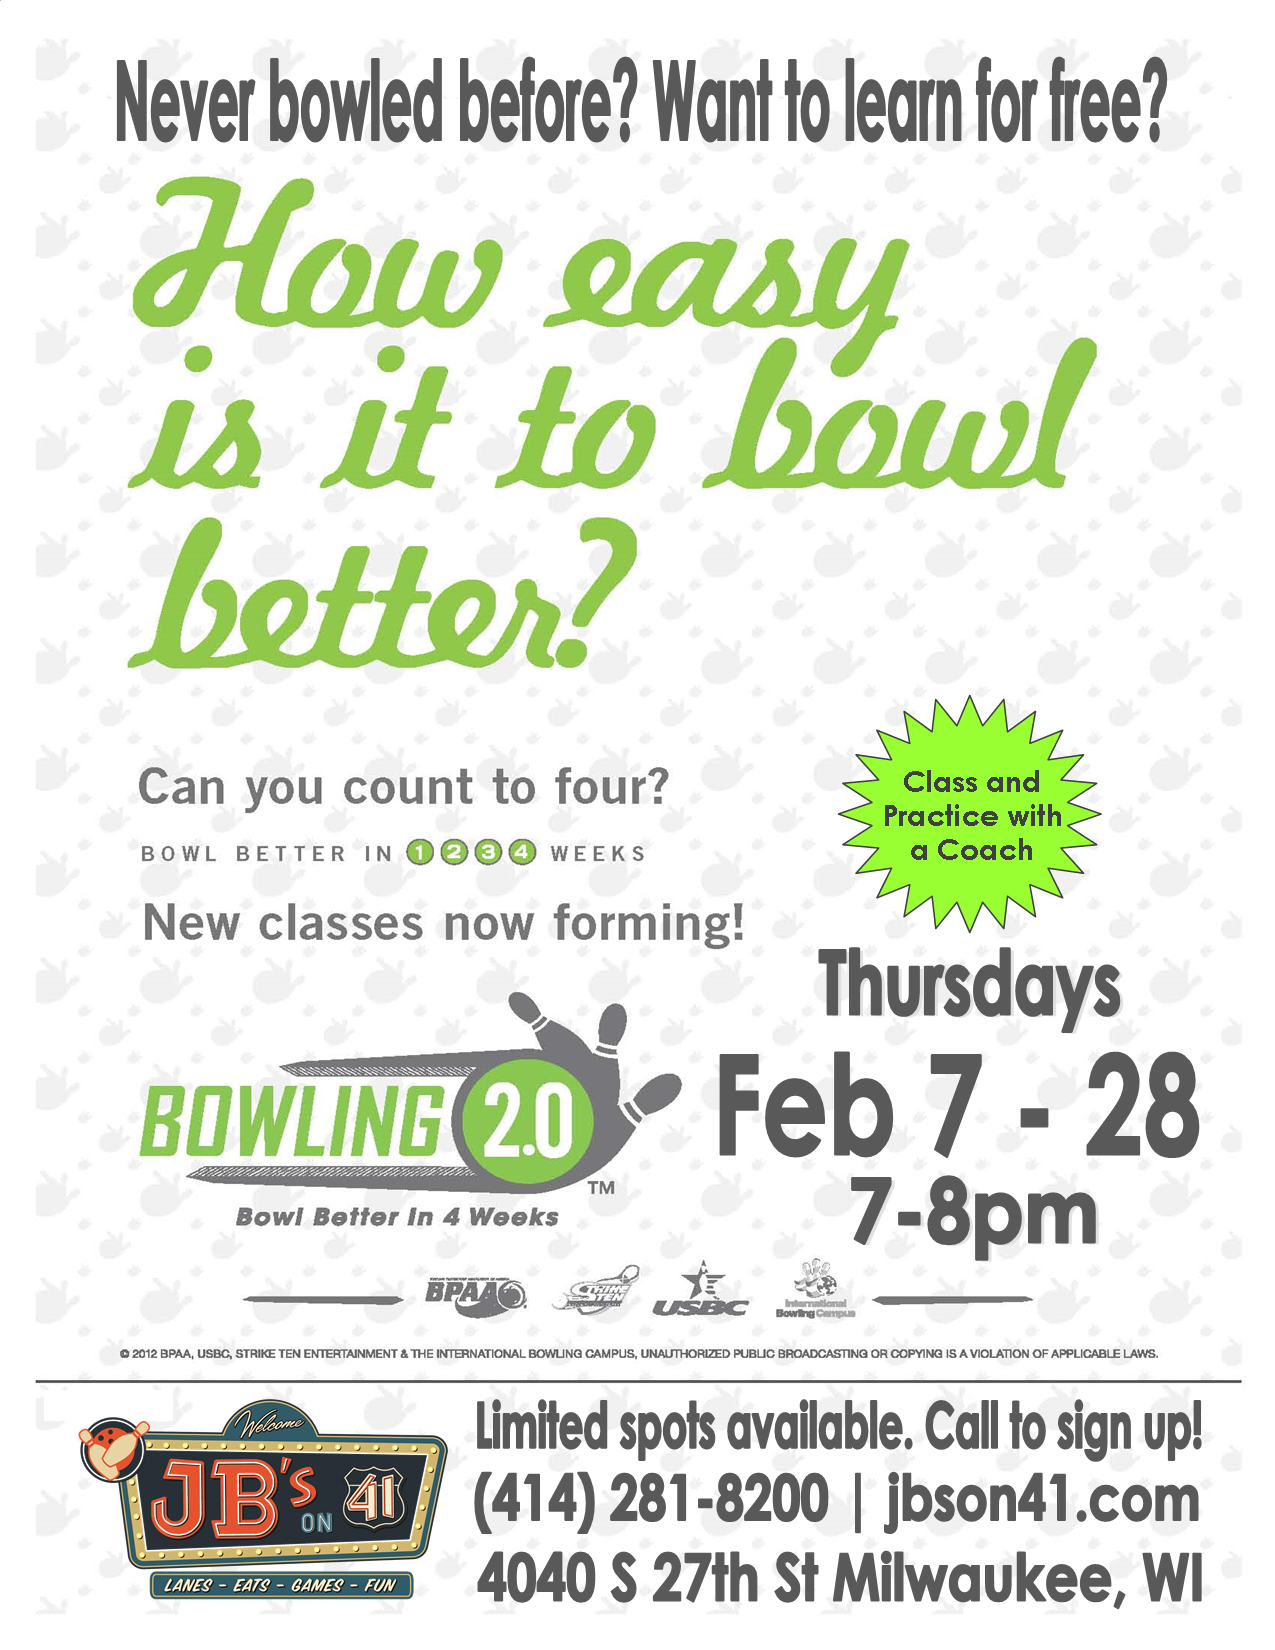 free bowling lessons | free bowling classes | milwaukee bowling classes | learn to bowl before league bowling | jb's on 41 milwaukee bowling lessons | adult bowling classes | teen bowling classes | learn a sport | bowling 2.0 | 4-week bowling class | free from jb's on 41 | february 2019 | bowling classes